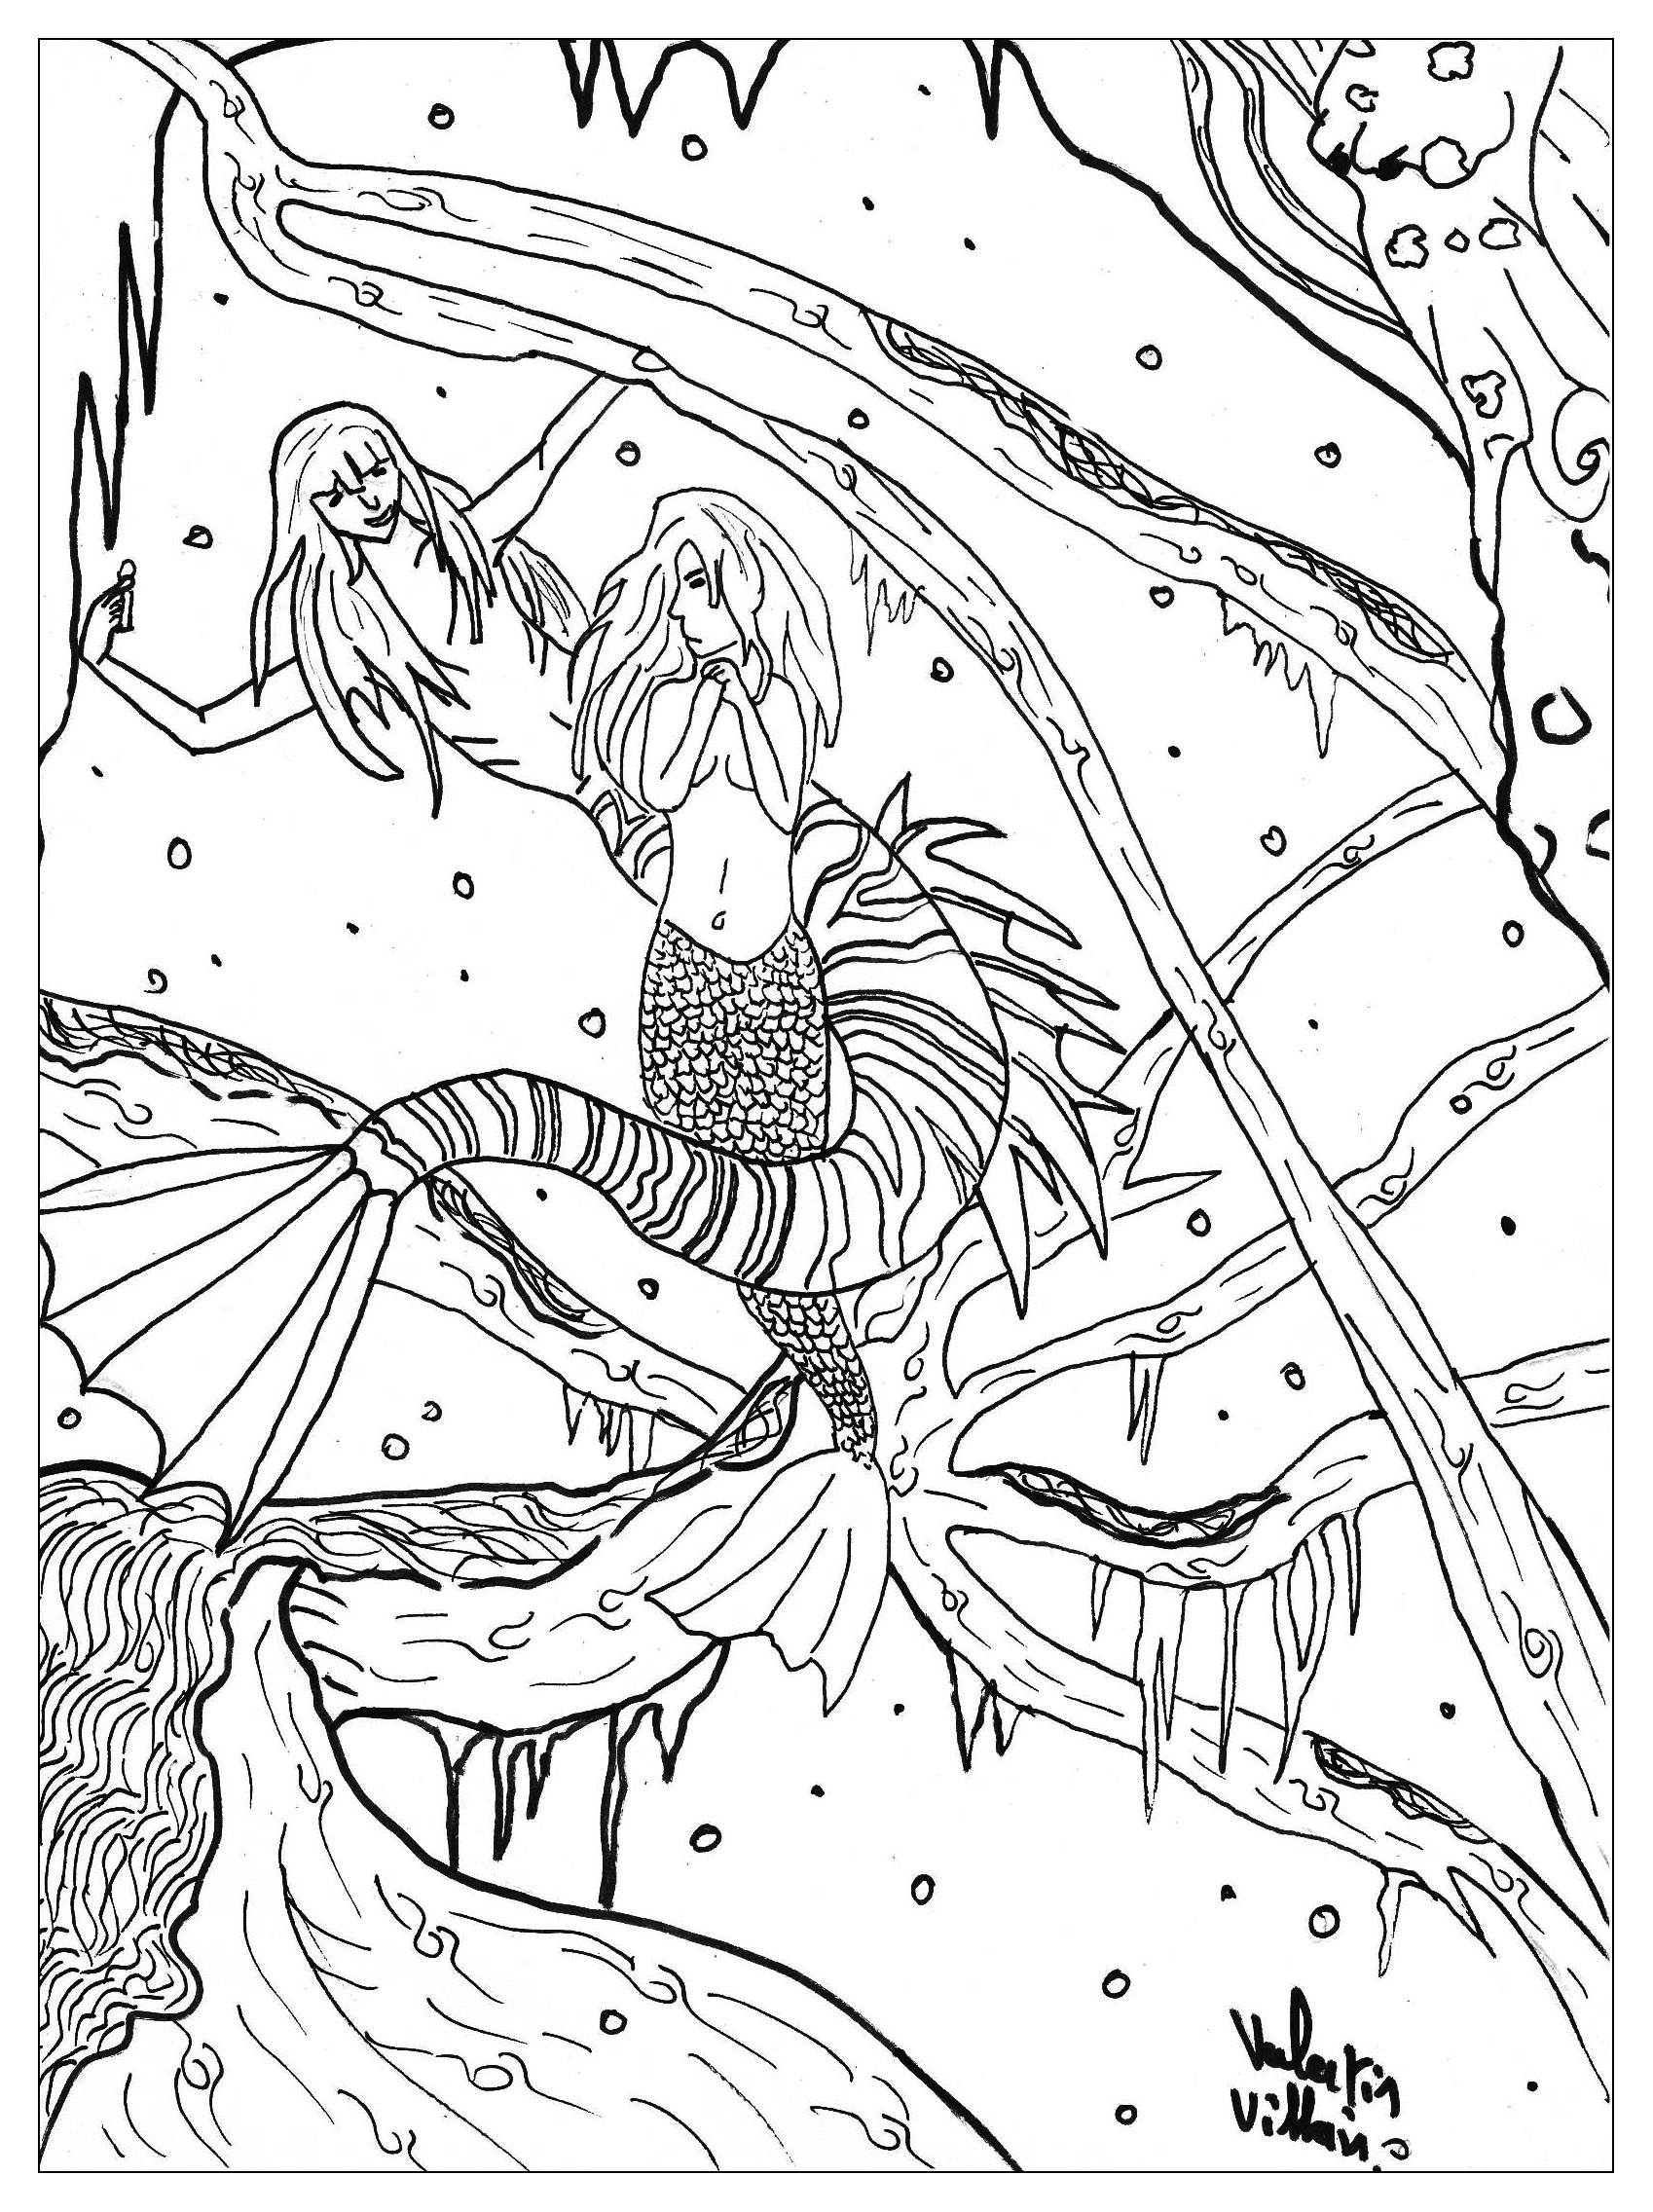 Your creations. You have colored this coloring page ?